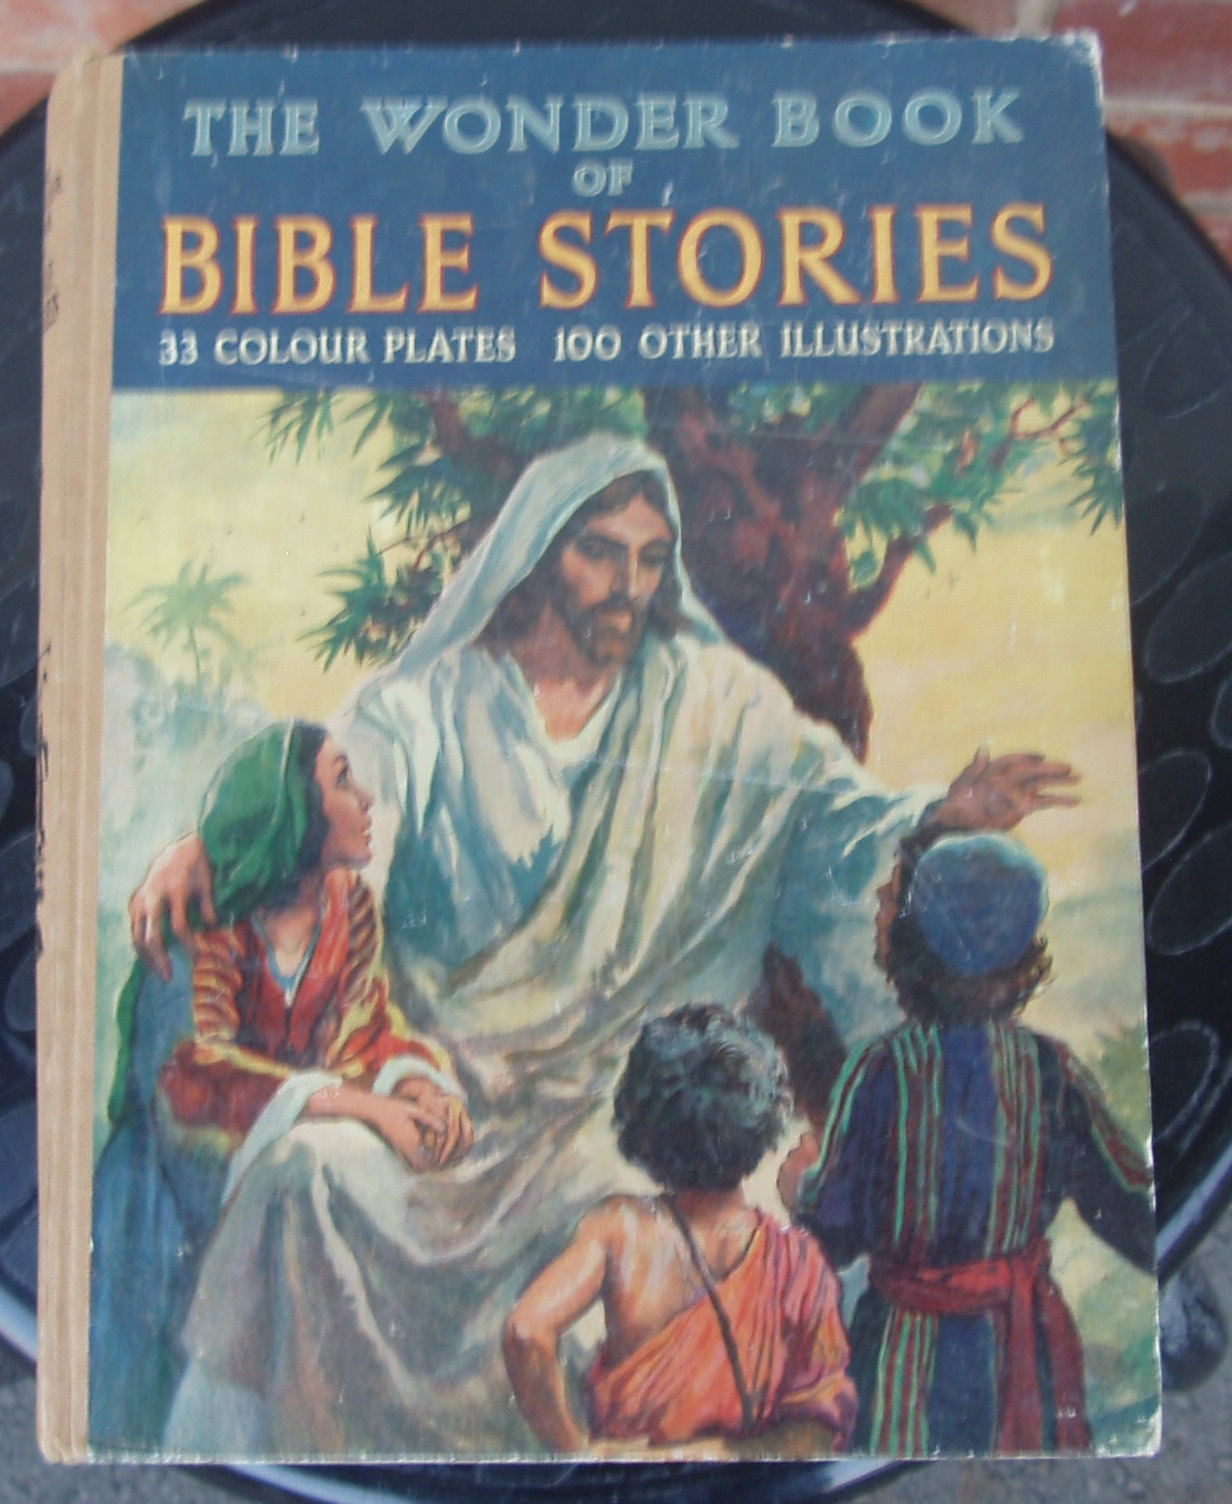 The Wonder book of Bible stories- by David Kyles